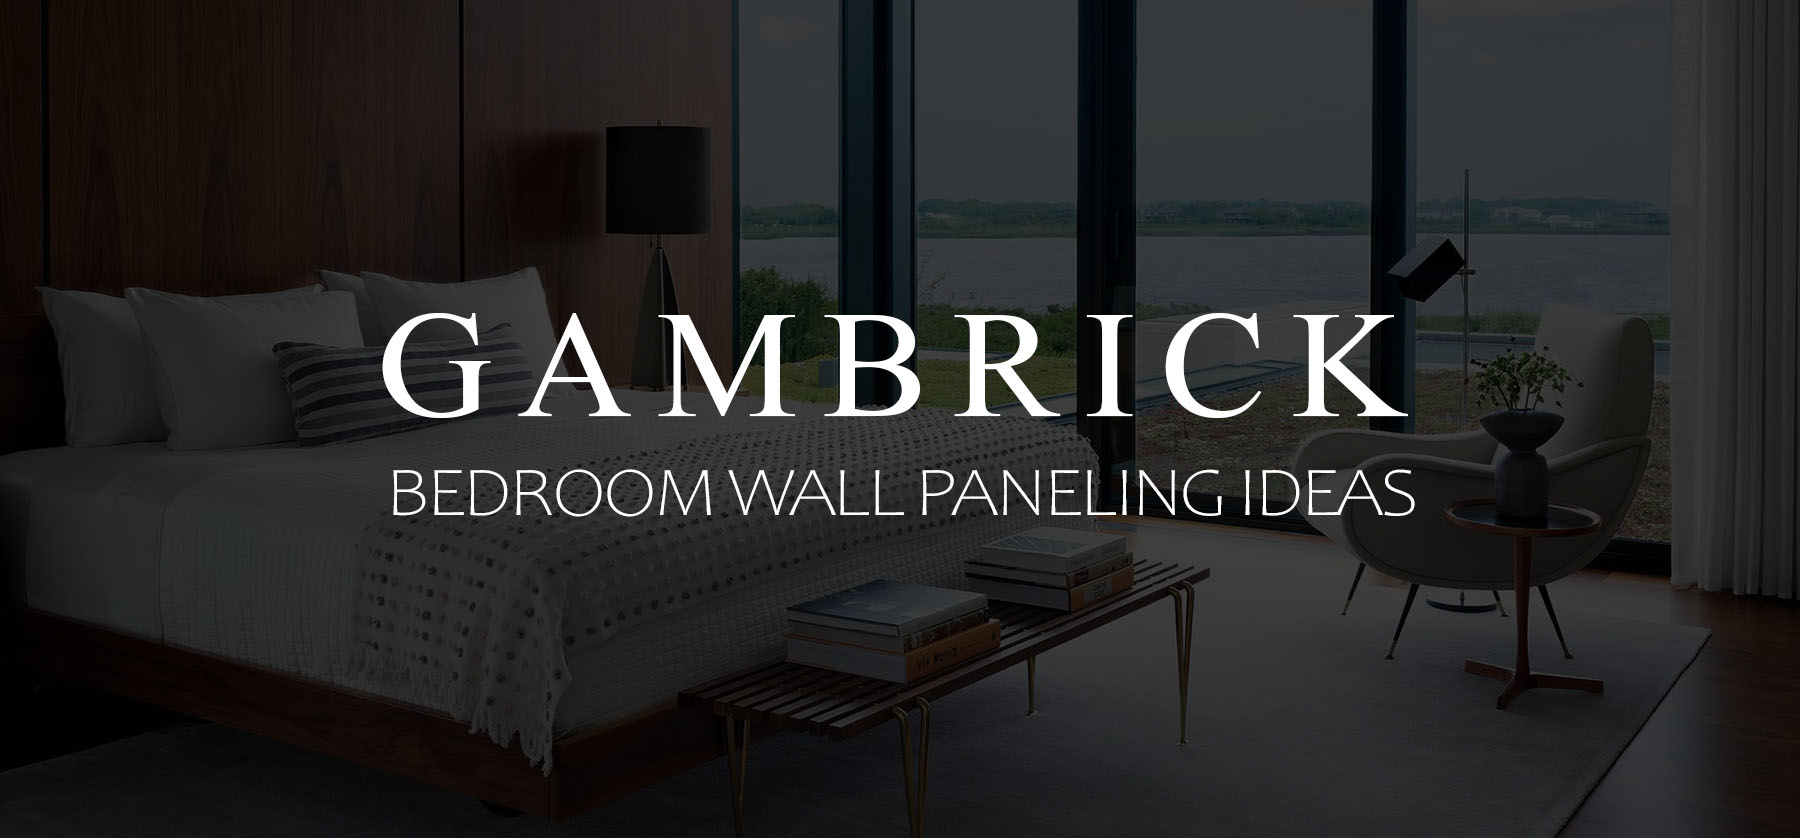 Bedroom wall paneling ideas banner 1